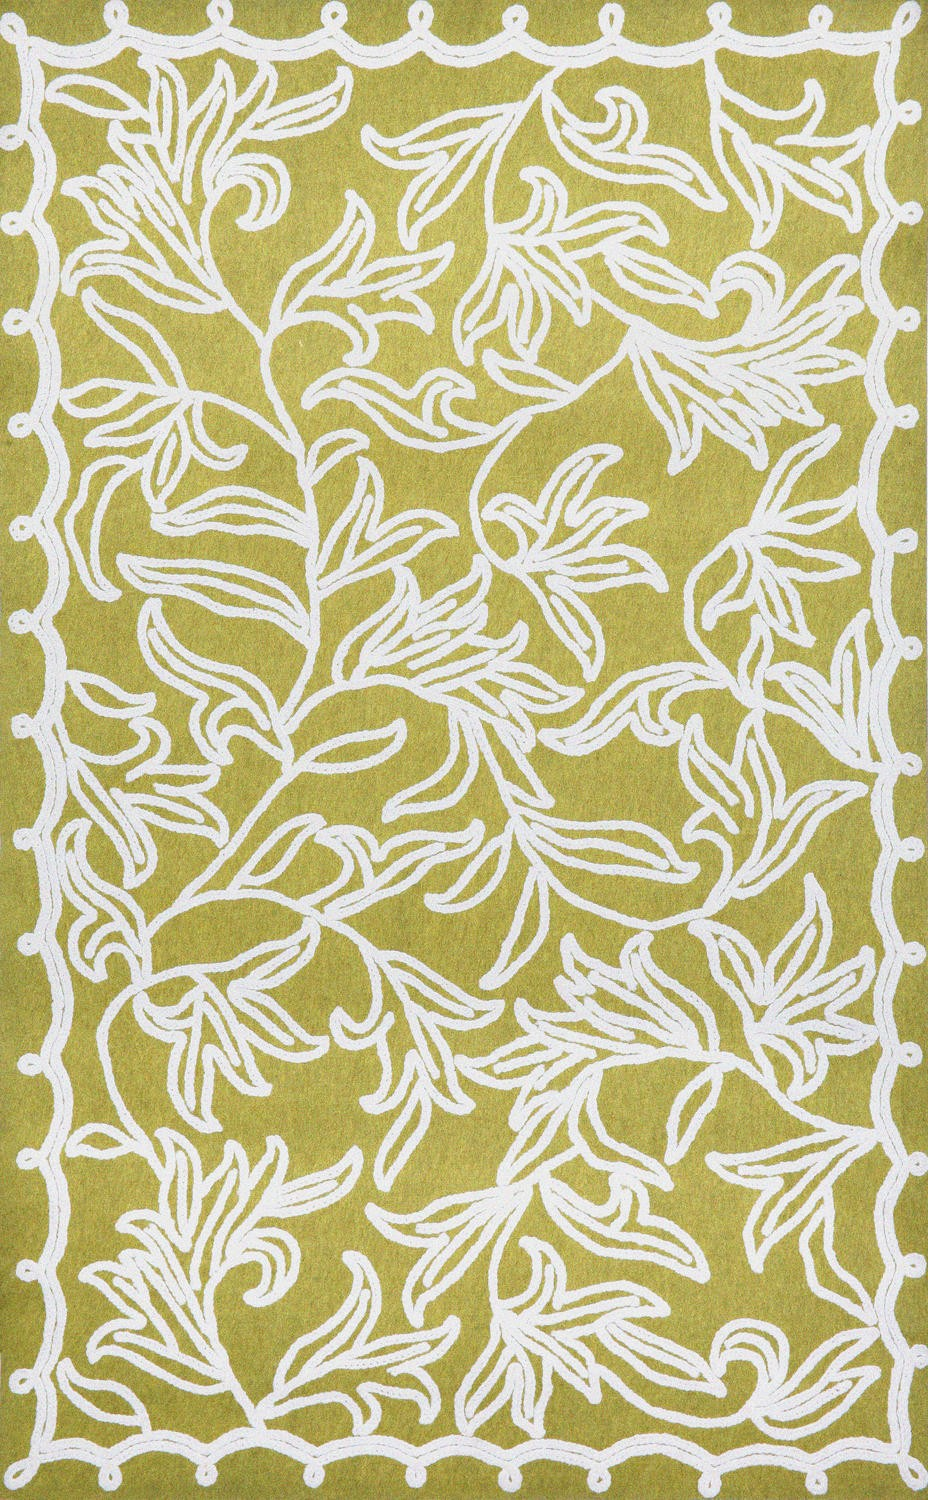 TransOcean Visions I Windsor Lime Rug